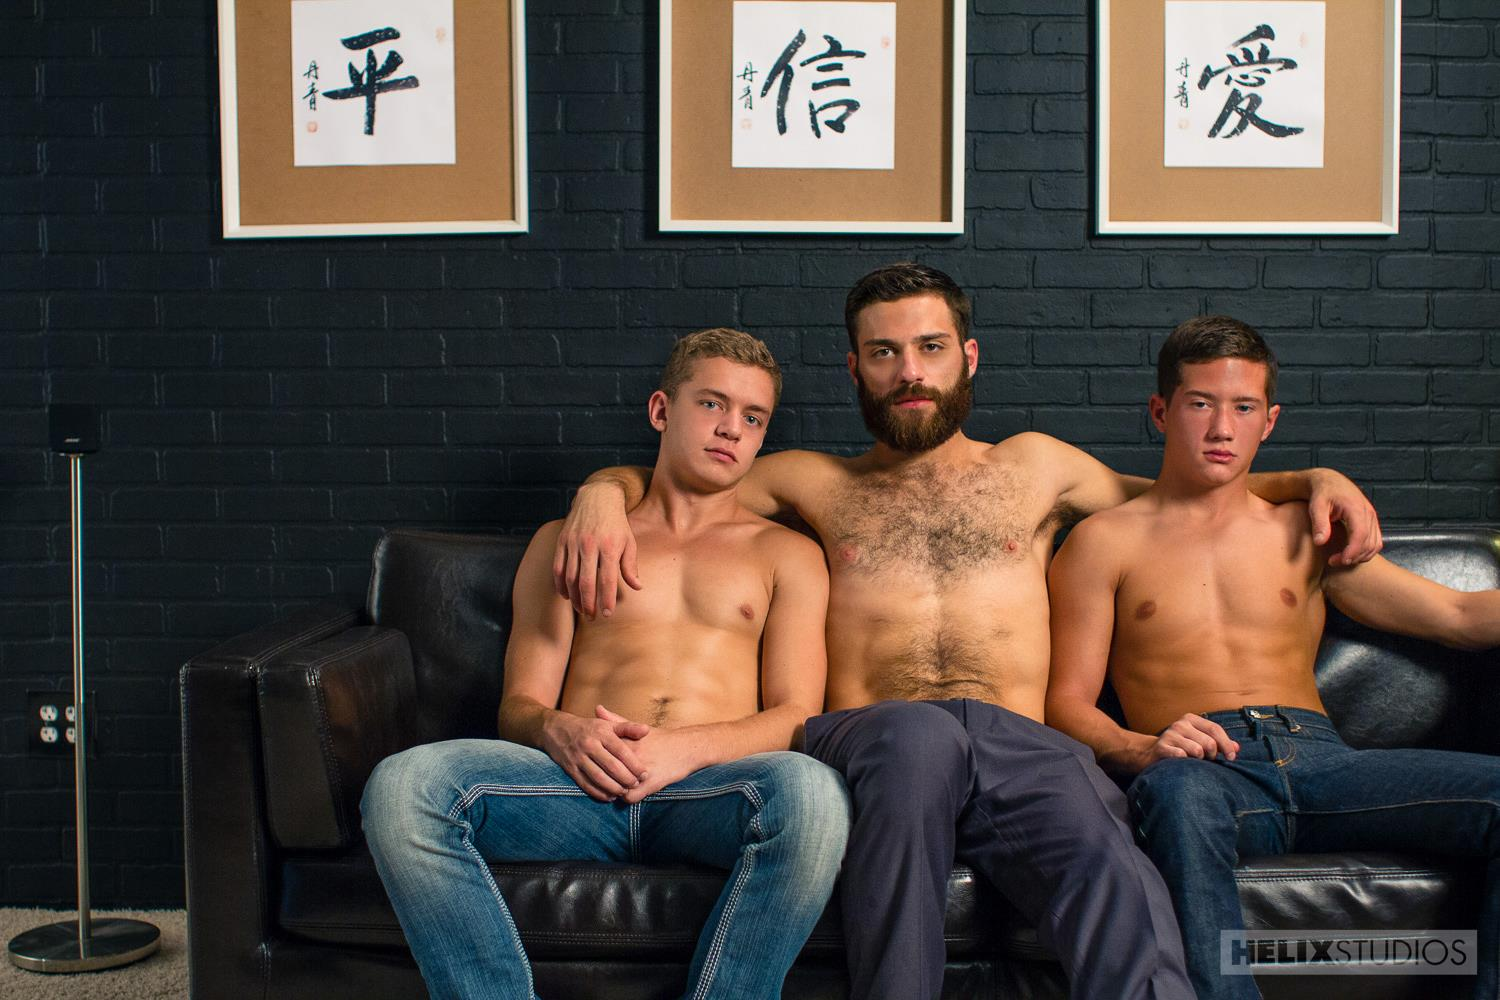 Helix-Studios-8TeenBoy-Ian-Levine-and-Tommy-Defendi-and-Tyler-Hill-Twinks-Getting-Fucked-Amateur-Gay-Porn-01.jpg